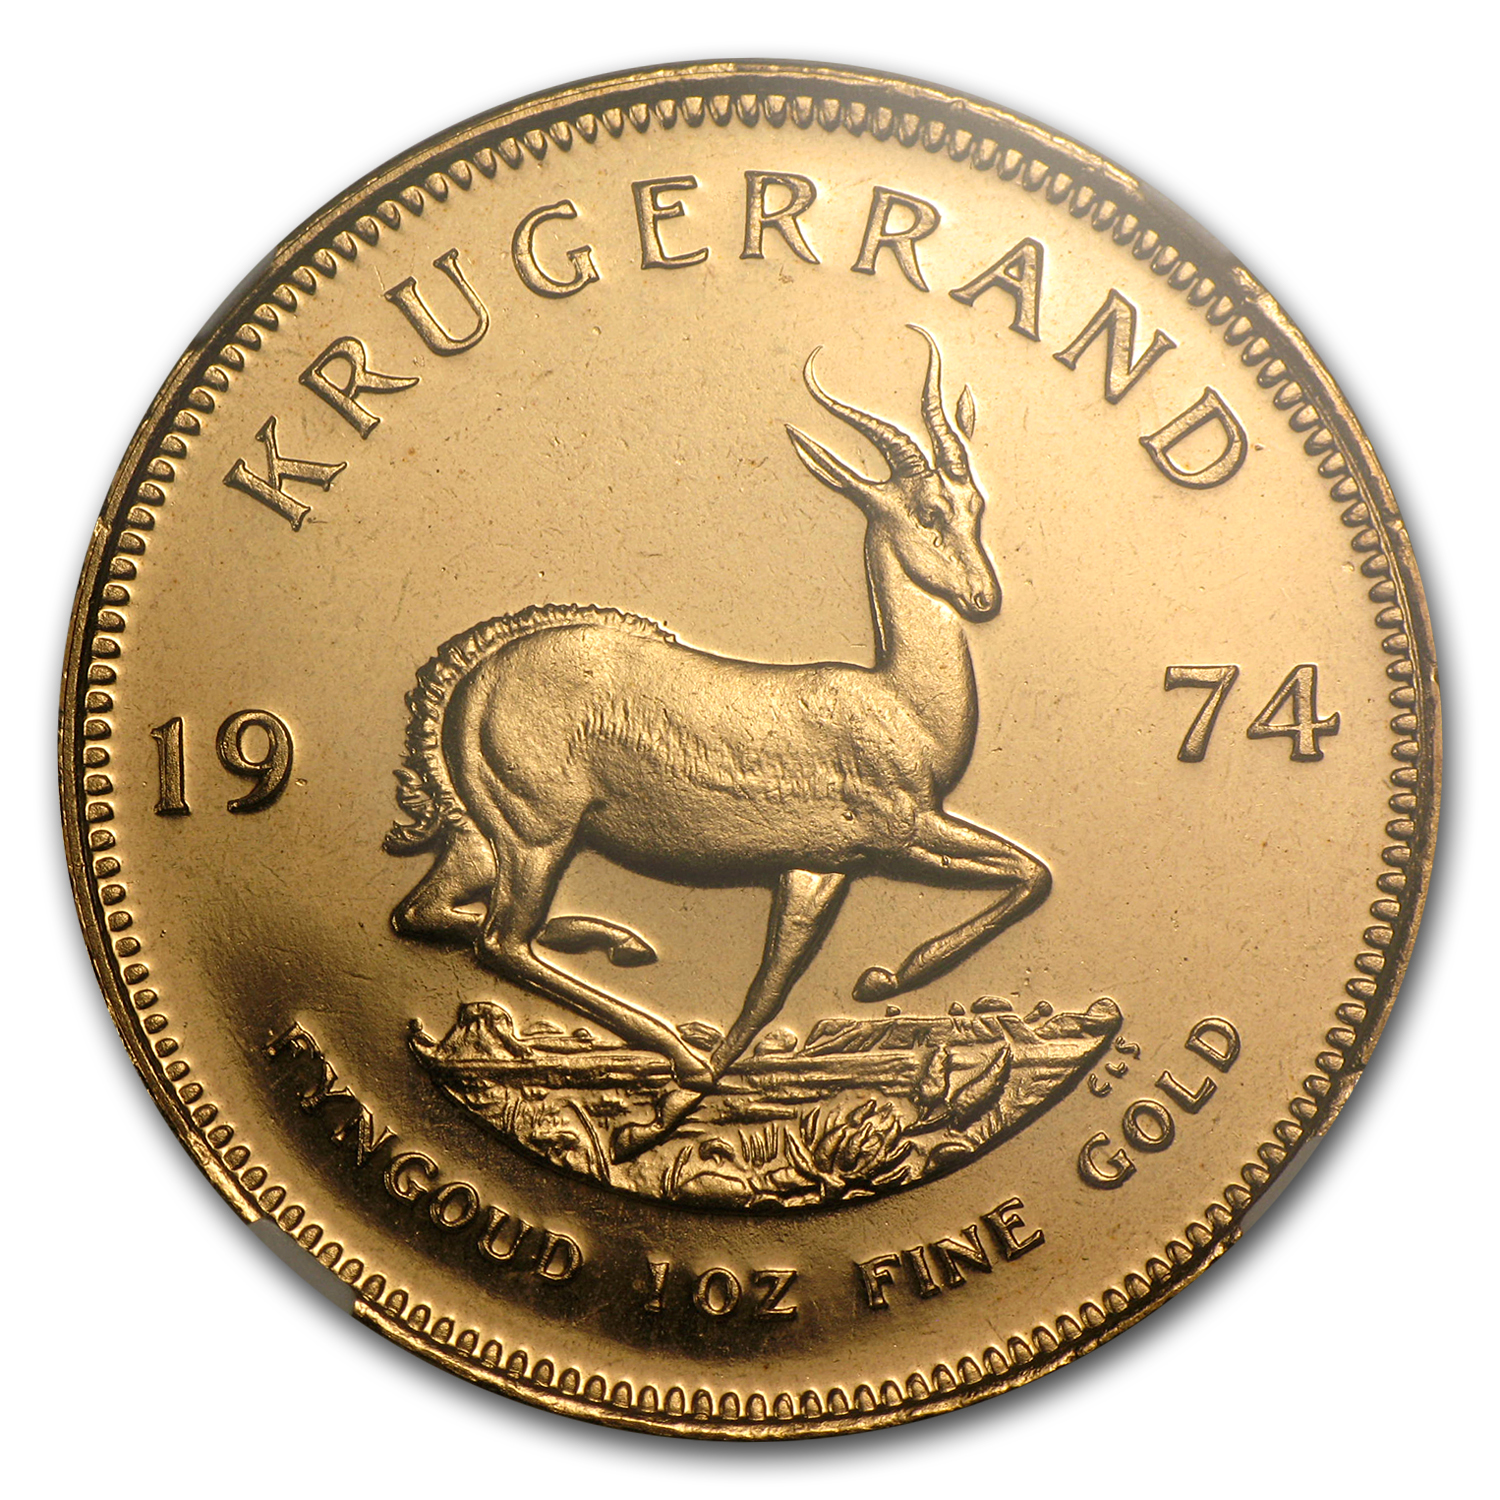 1974 1 oz Gold South African Krugerrand PF-68 Cameo NGC